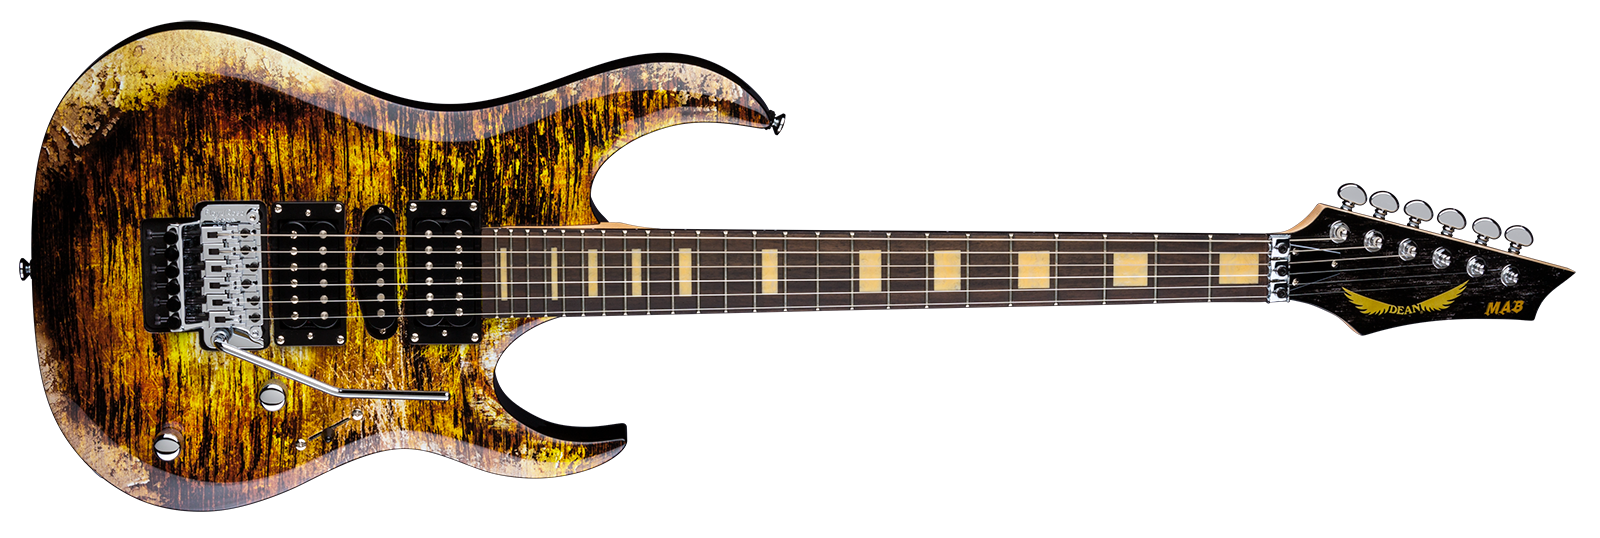 Michael Batio MAB Gold Relic